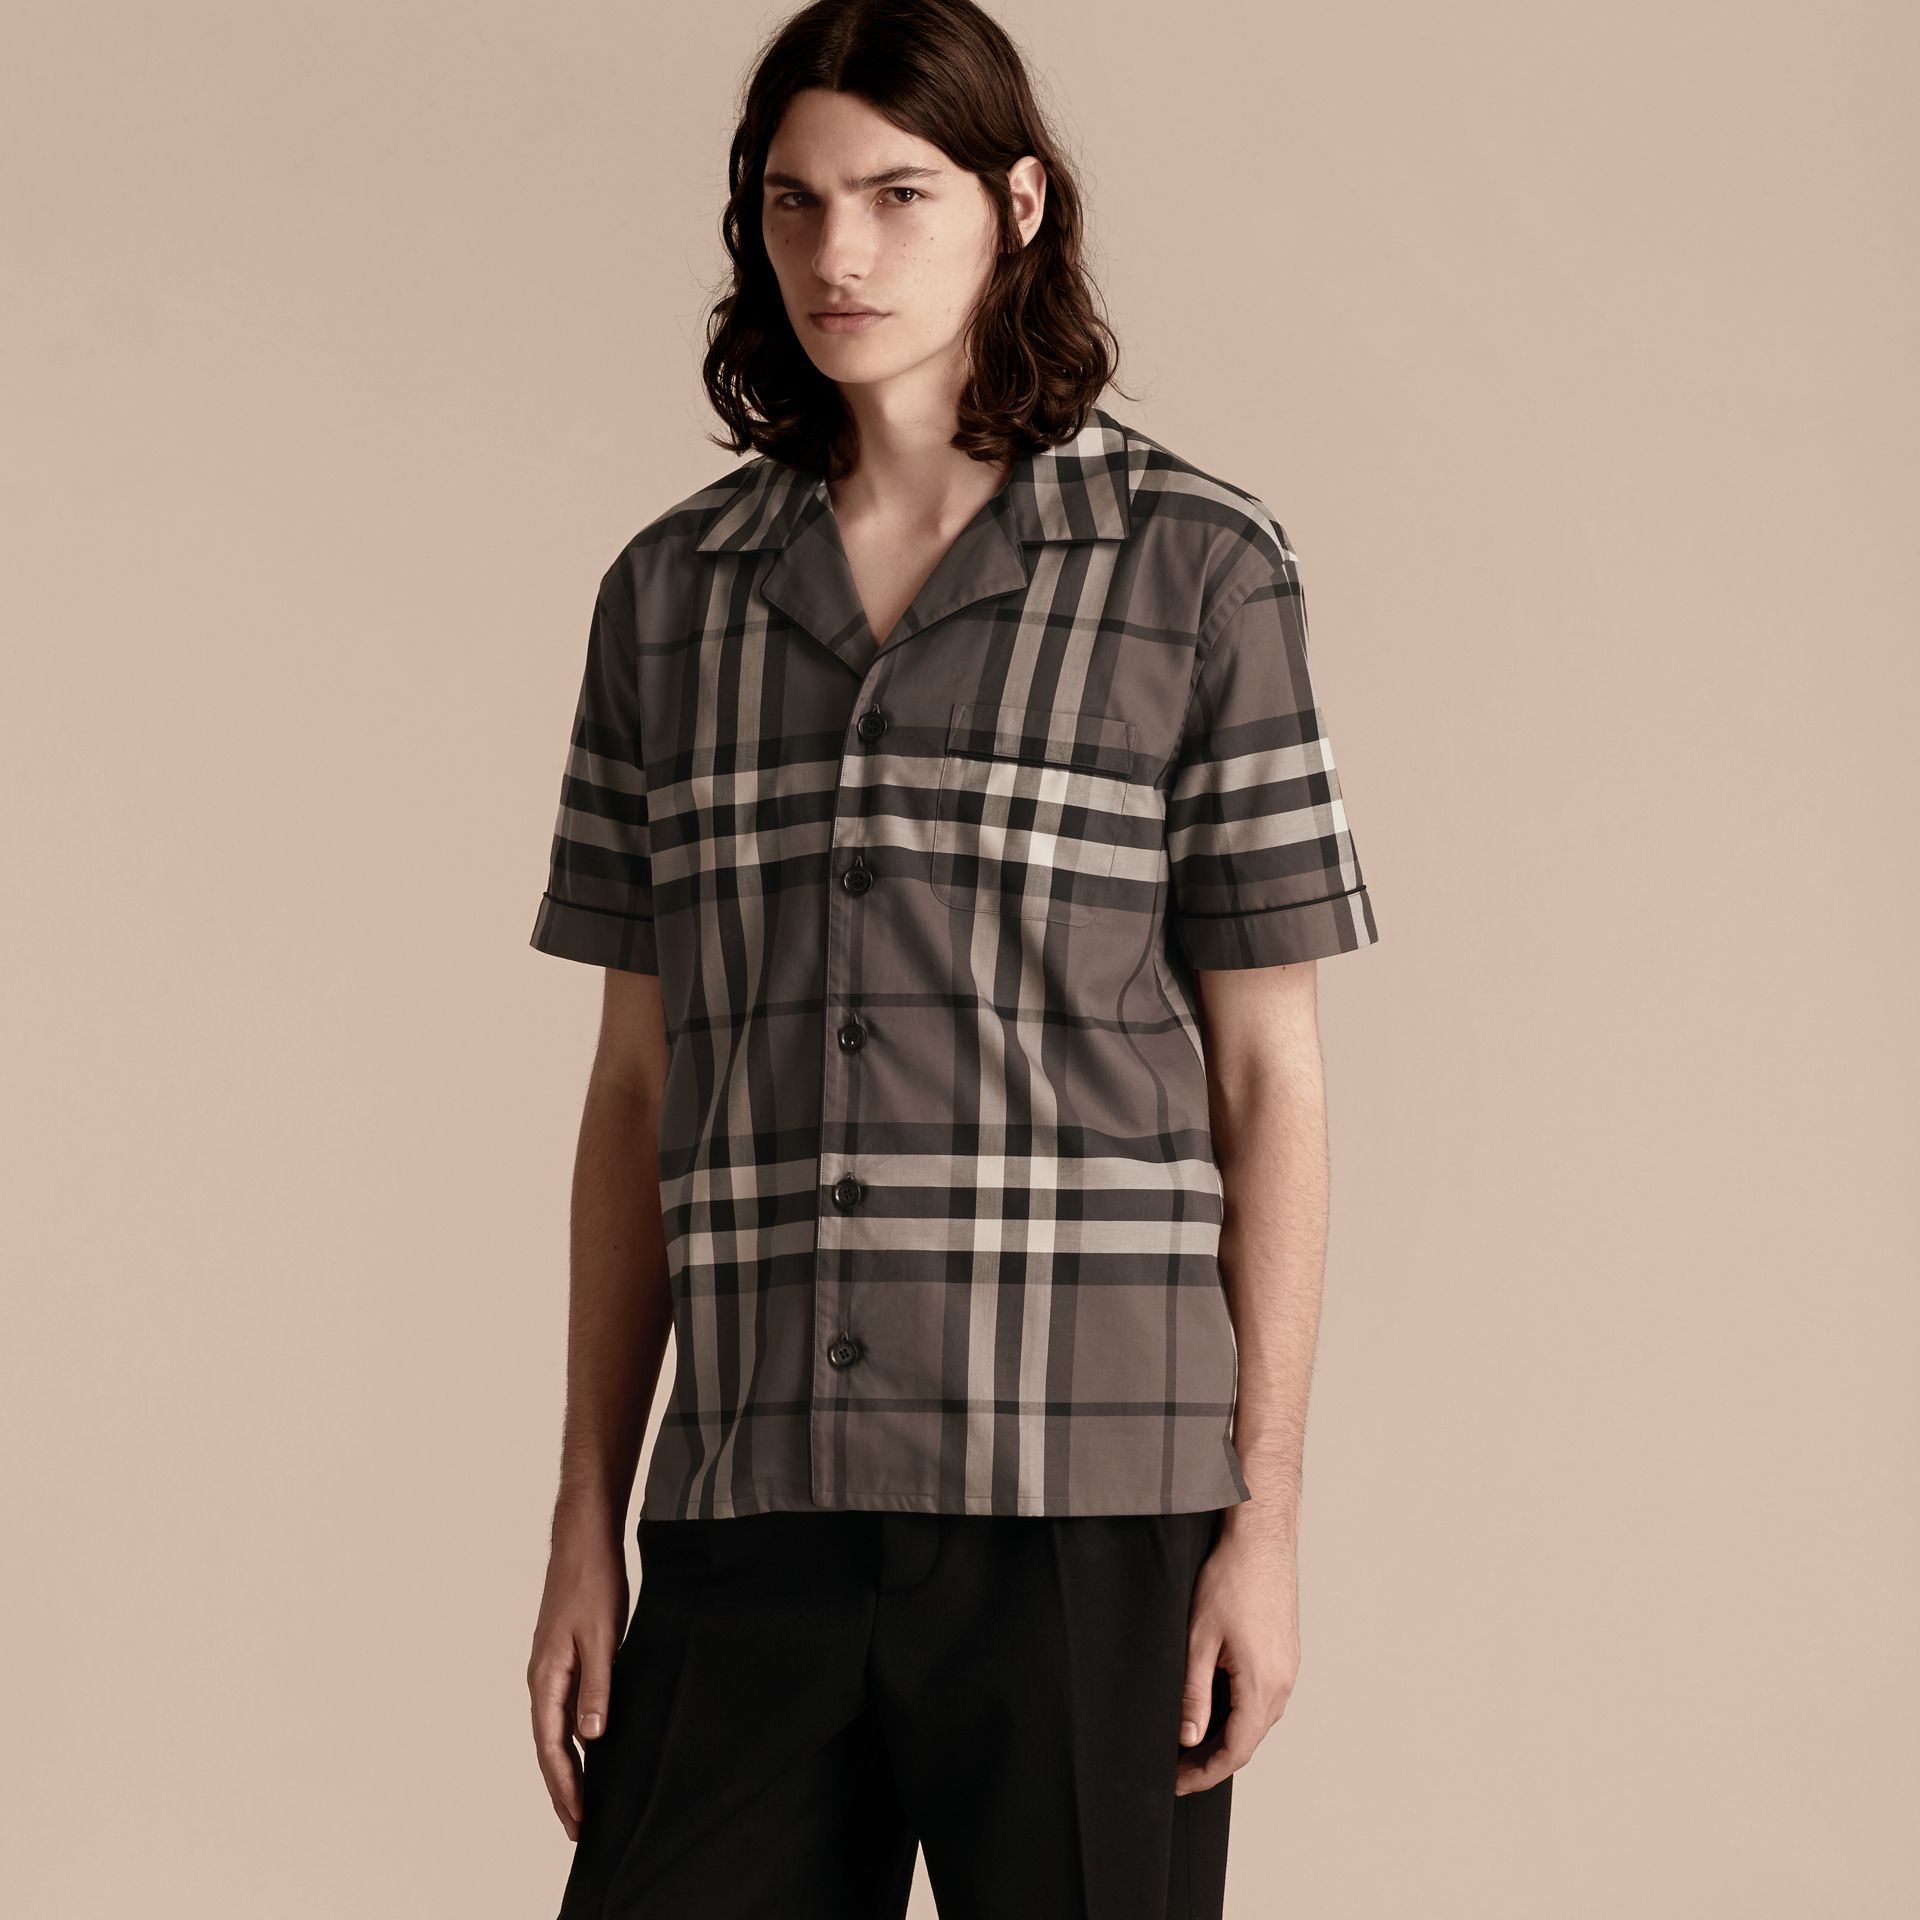 Charcoal Short-sleeved Check Cotton Pyjama-style Shirt Charcoal - gallery image 6